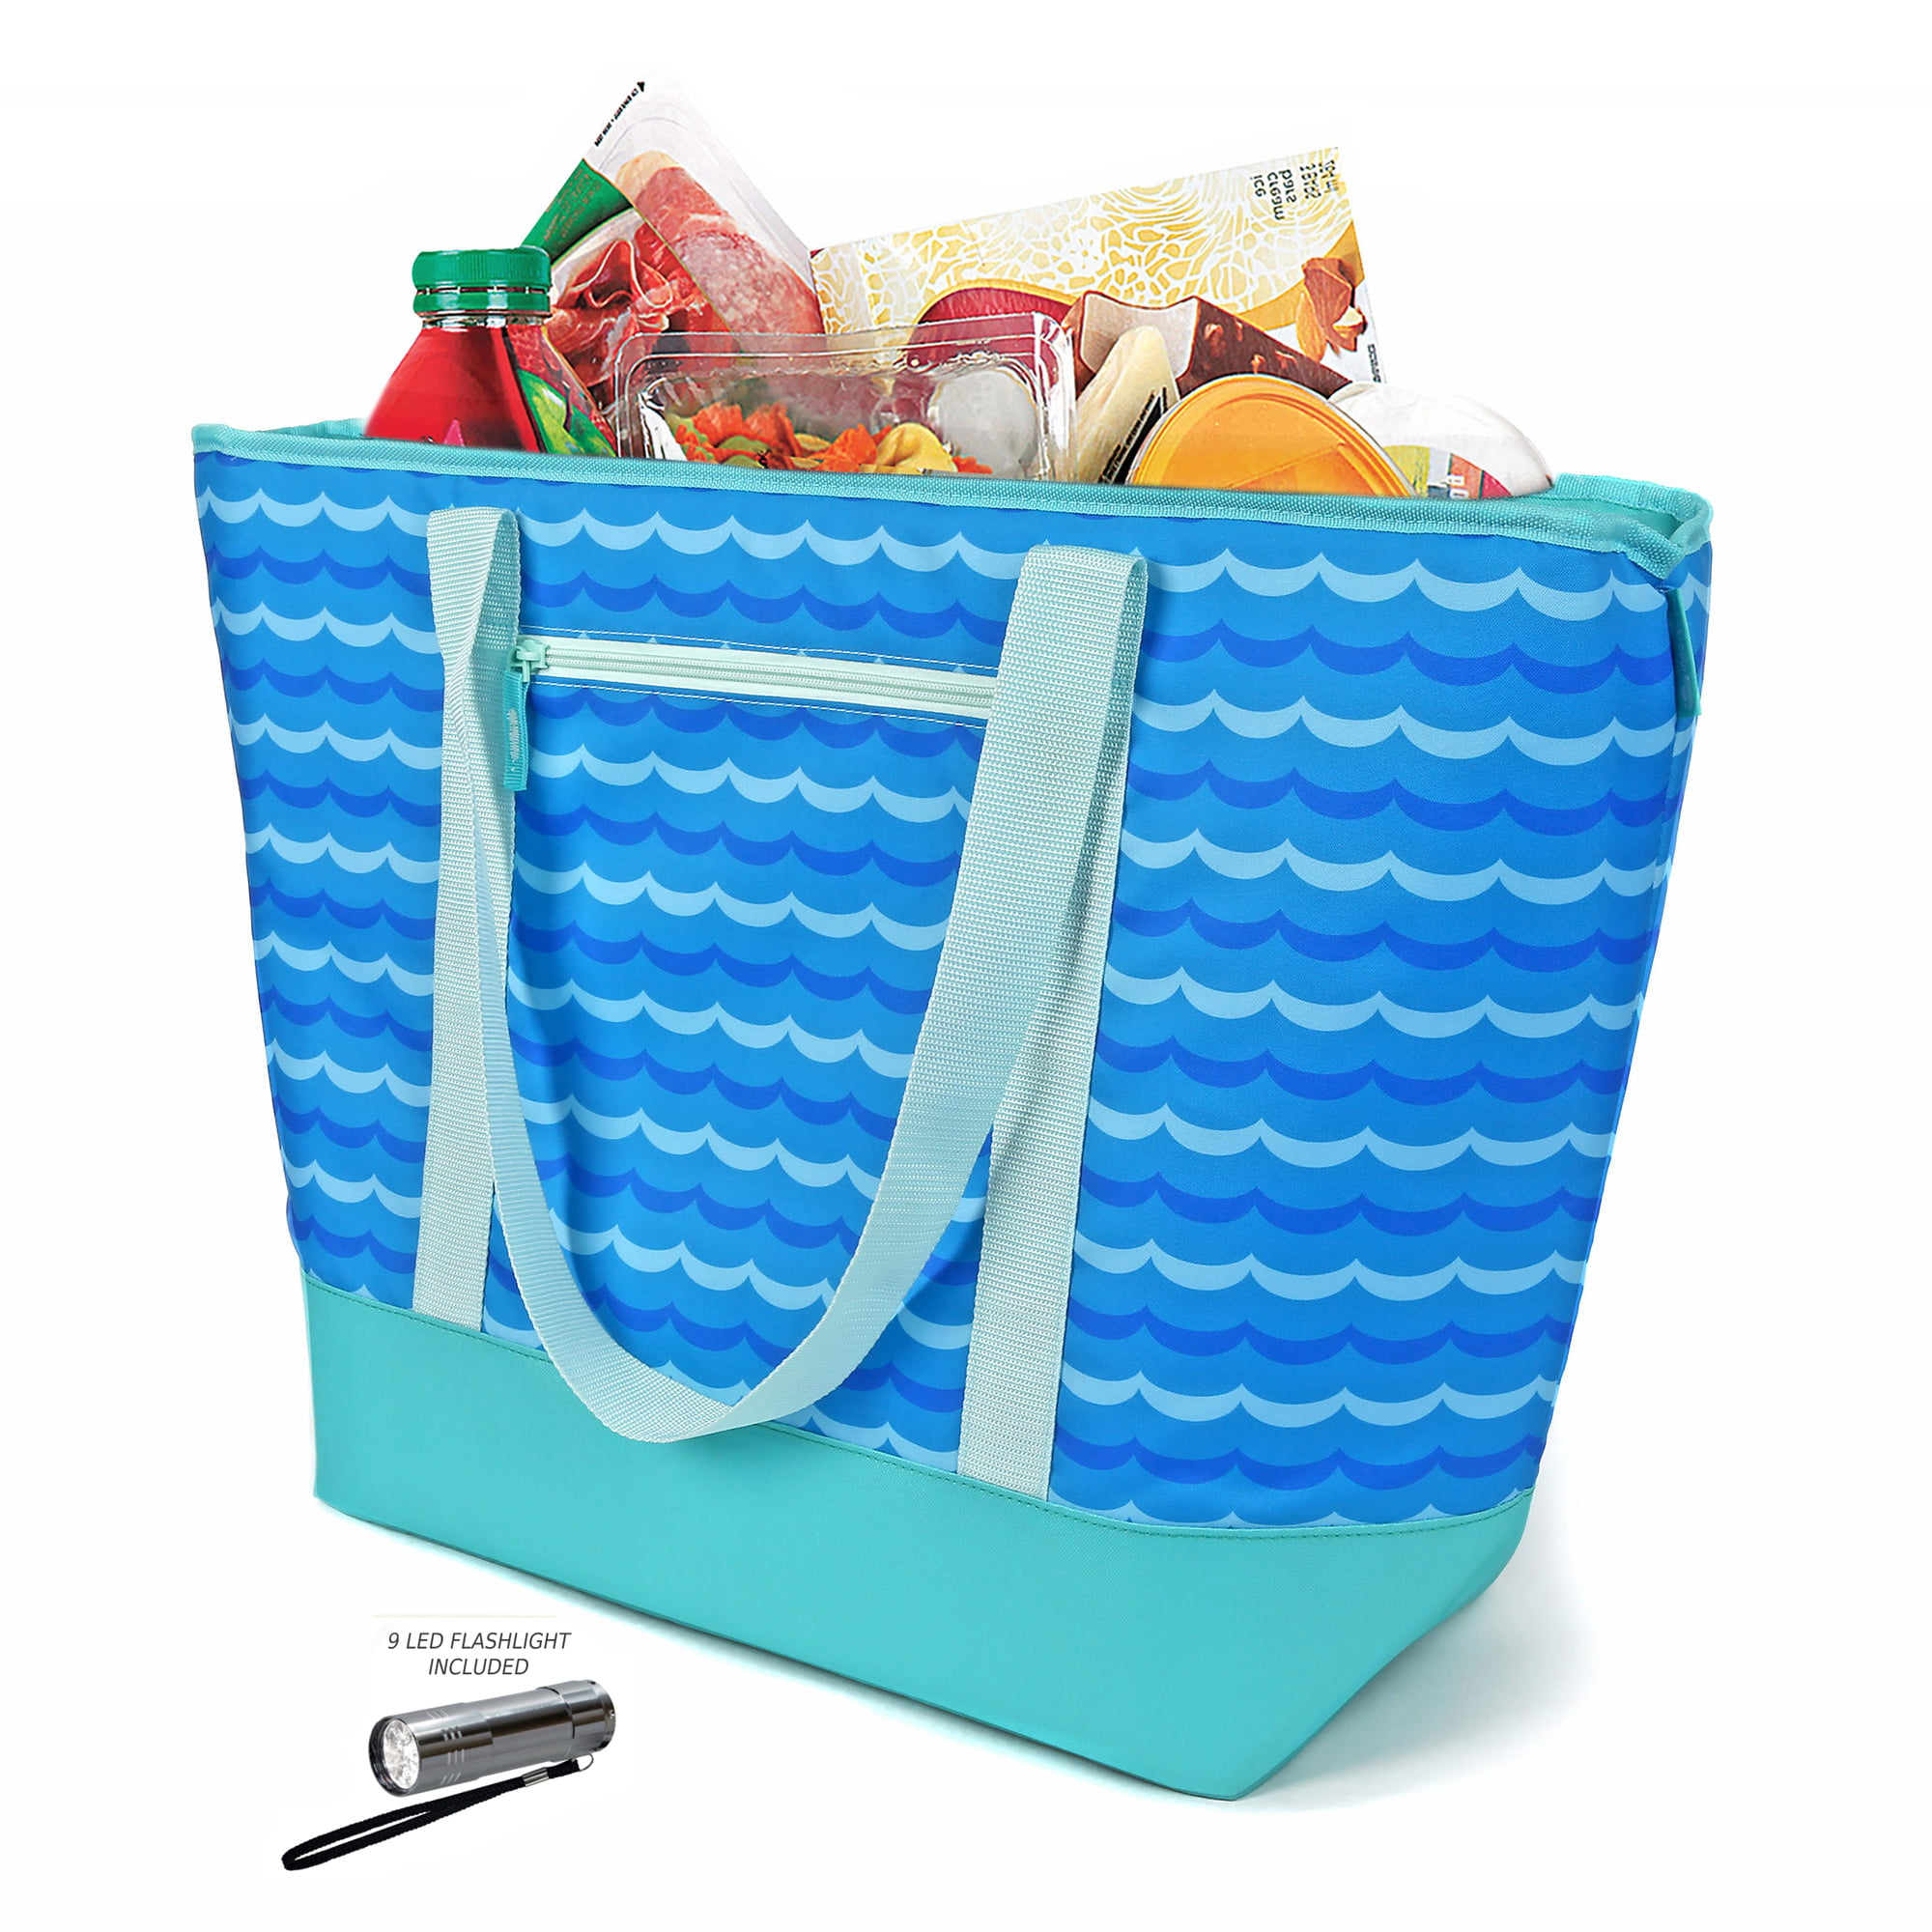 12 Gallon Insulated Mega Tote Blue Outdoor Picnic Cooler Bag for Camping, Sports, Beach,... by